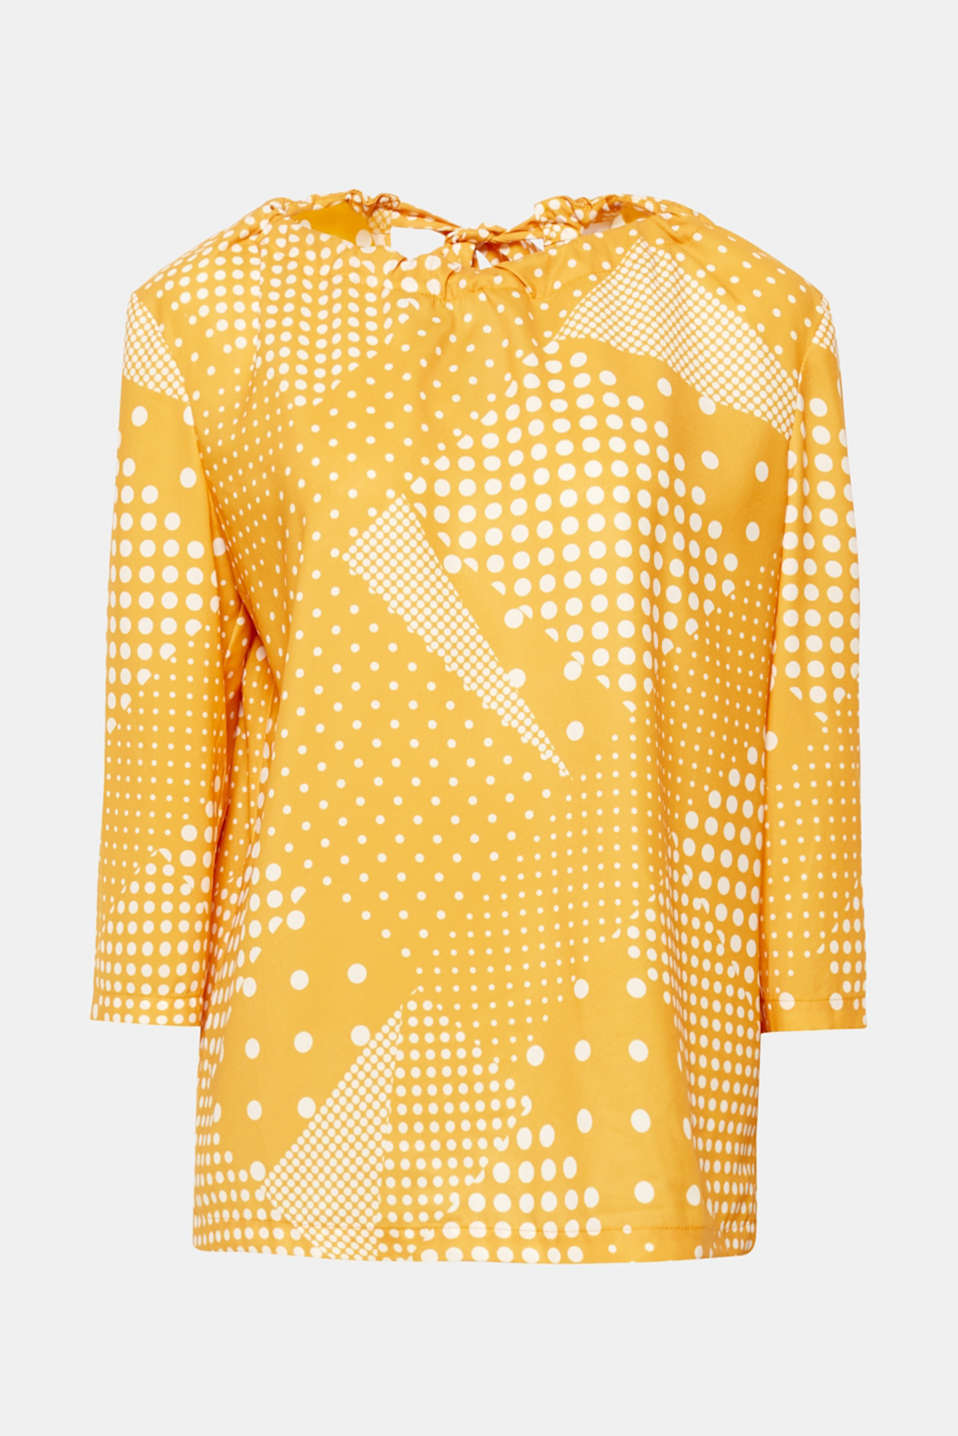 Wonderful polka dots in different sizes give this flowing, loosely cut blouse with a bow at the back its new style!